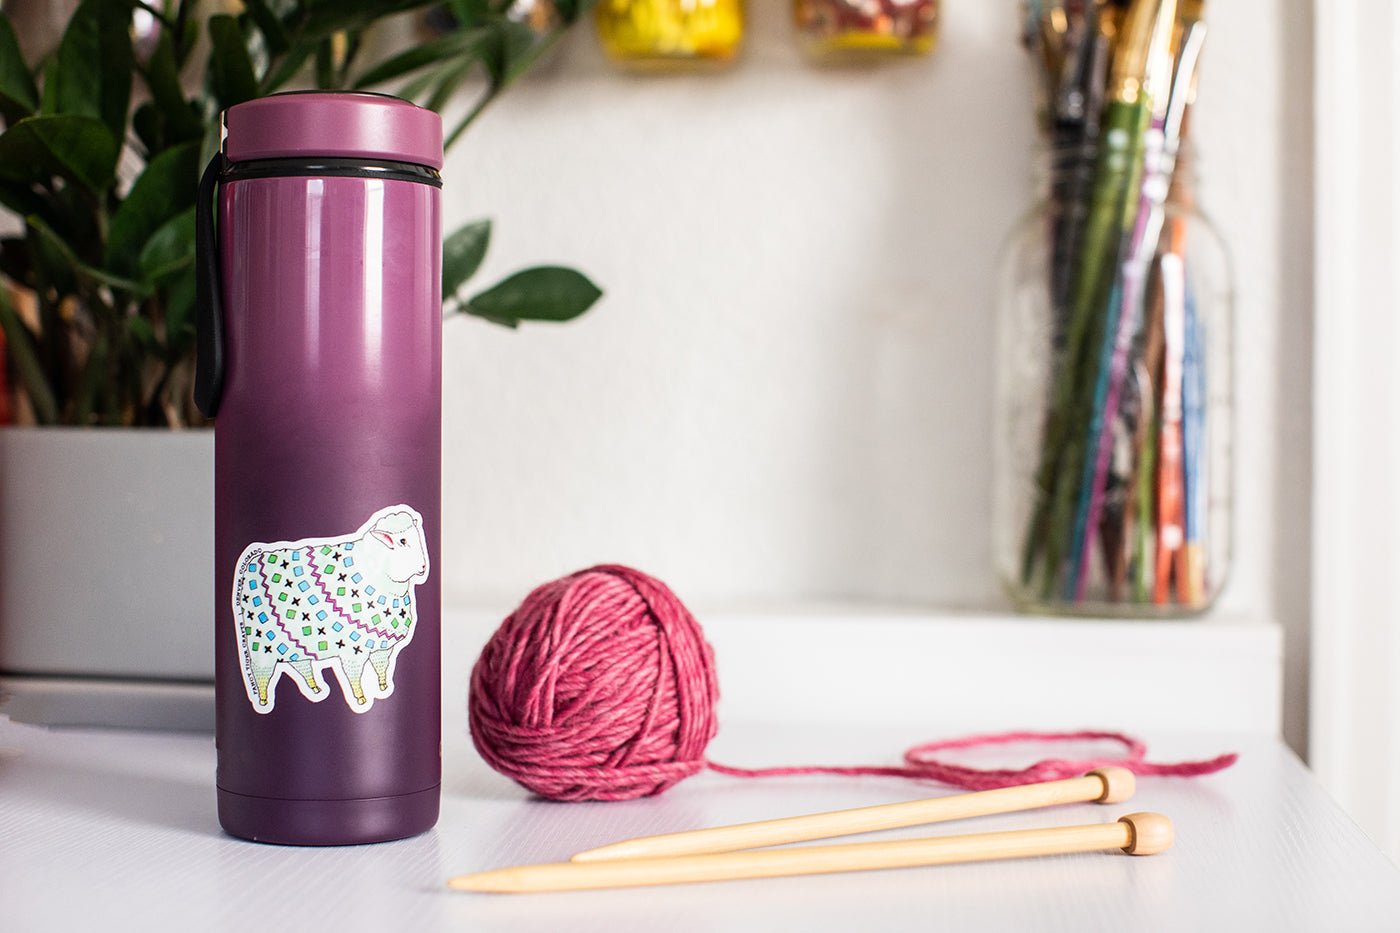 This is an image of a purple water bottle with a sheep sticker on the side of it and a ball of yarn and knitting needles sitting beside it